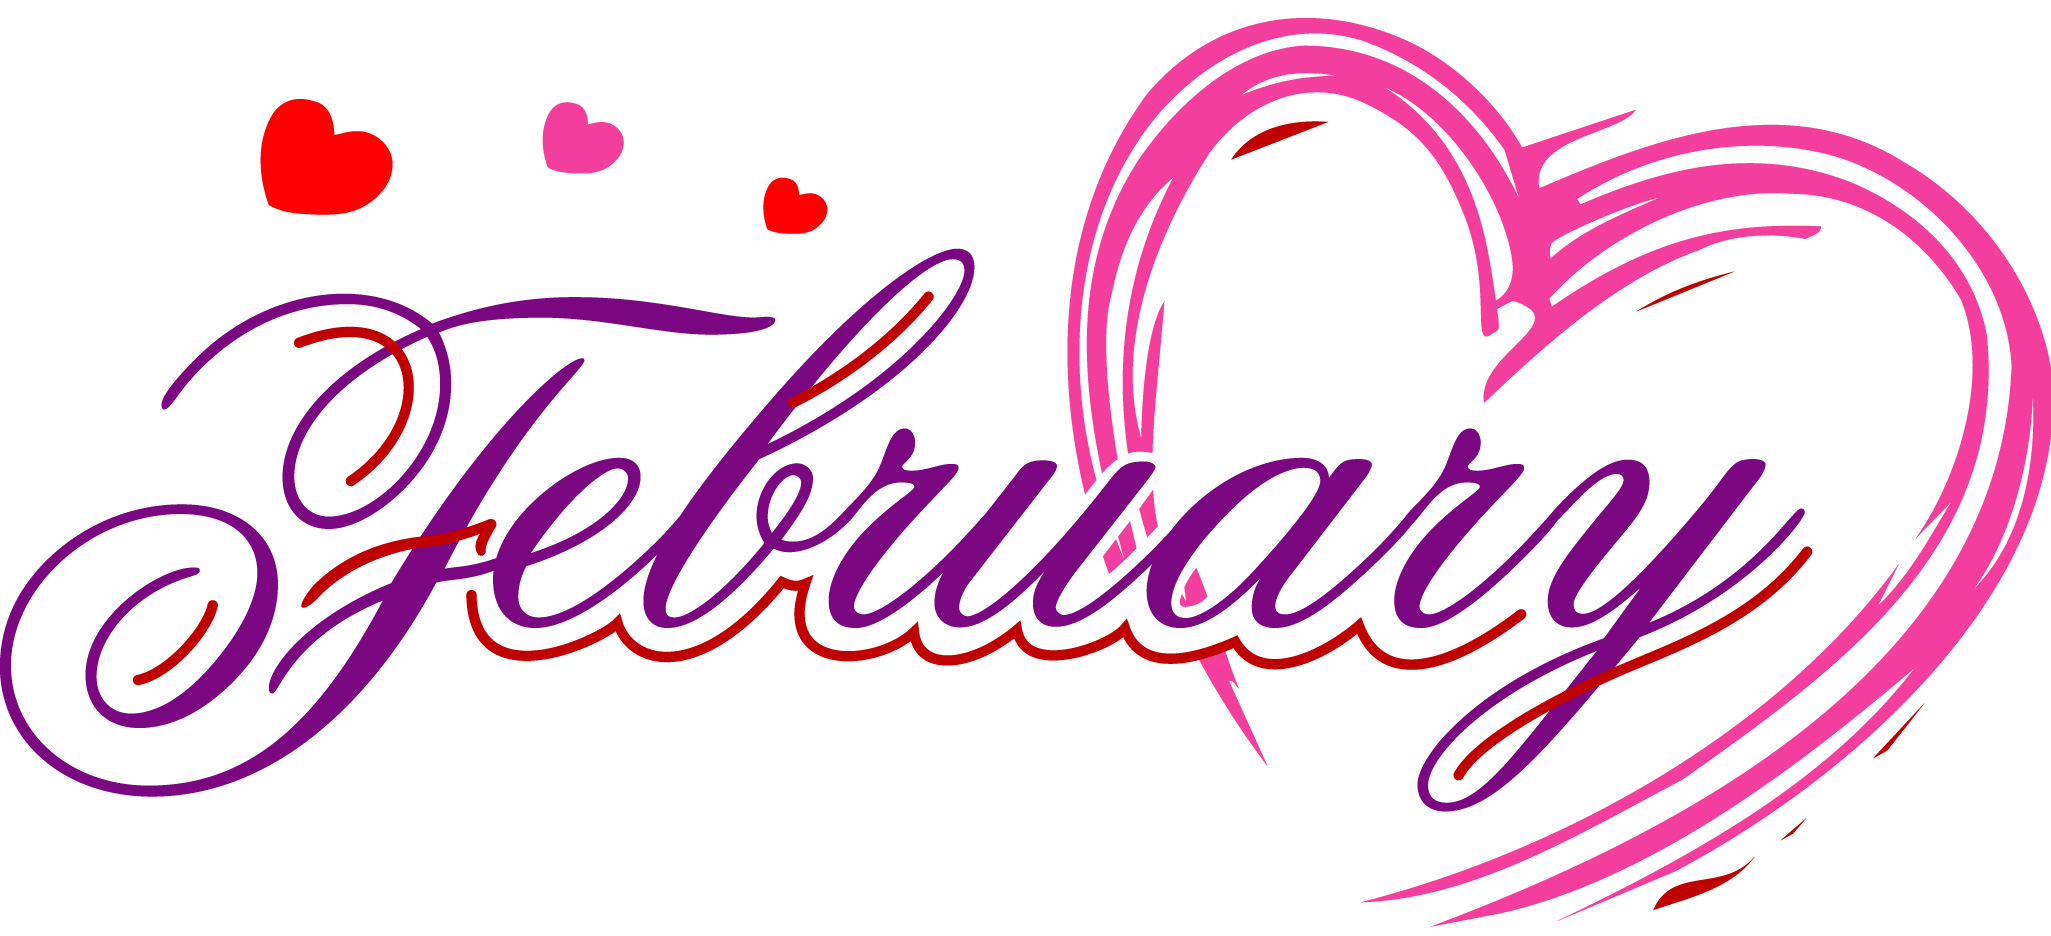 Free February Weather Cliparts, Download Free Clip Art, Free.